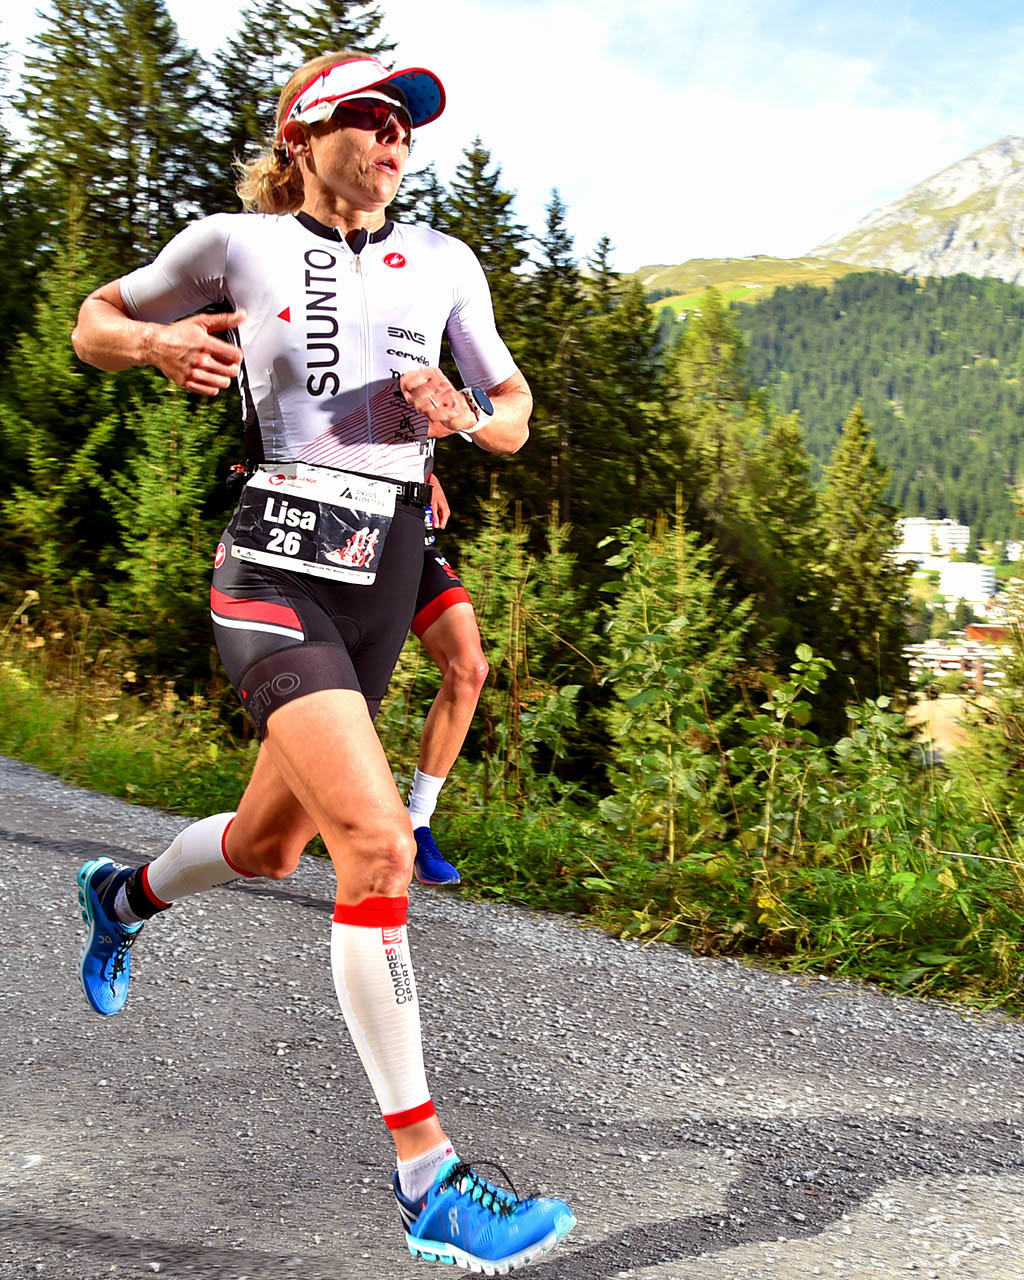 Lisa Roberts Chewing up some miles at Switzerland's 2019 Challenge Davos triathlon.